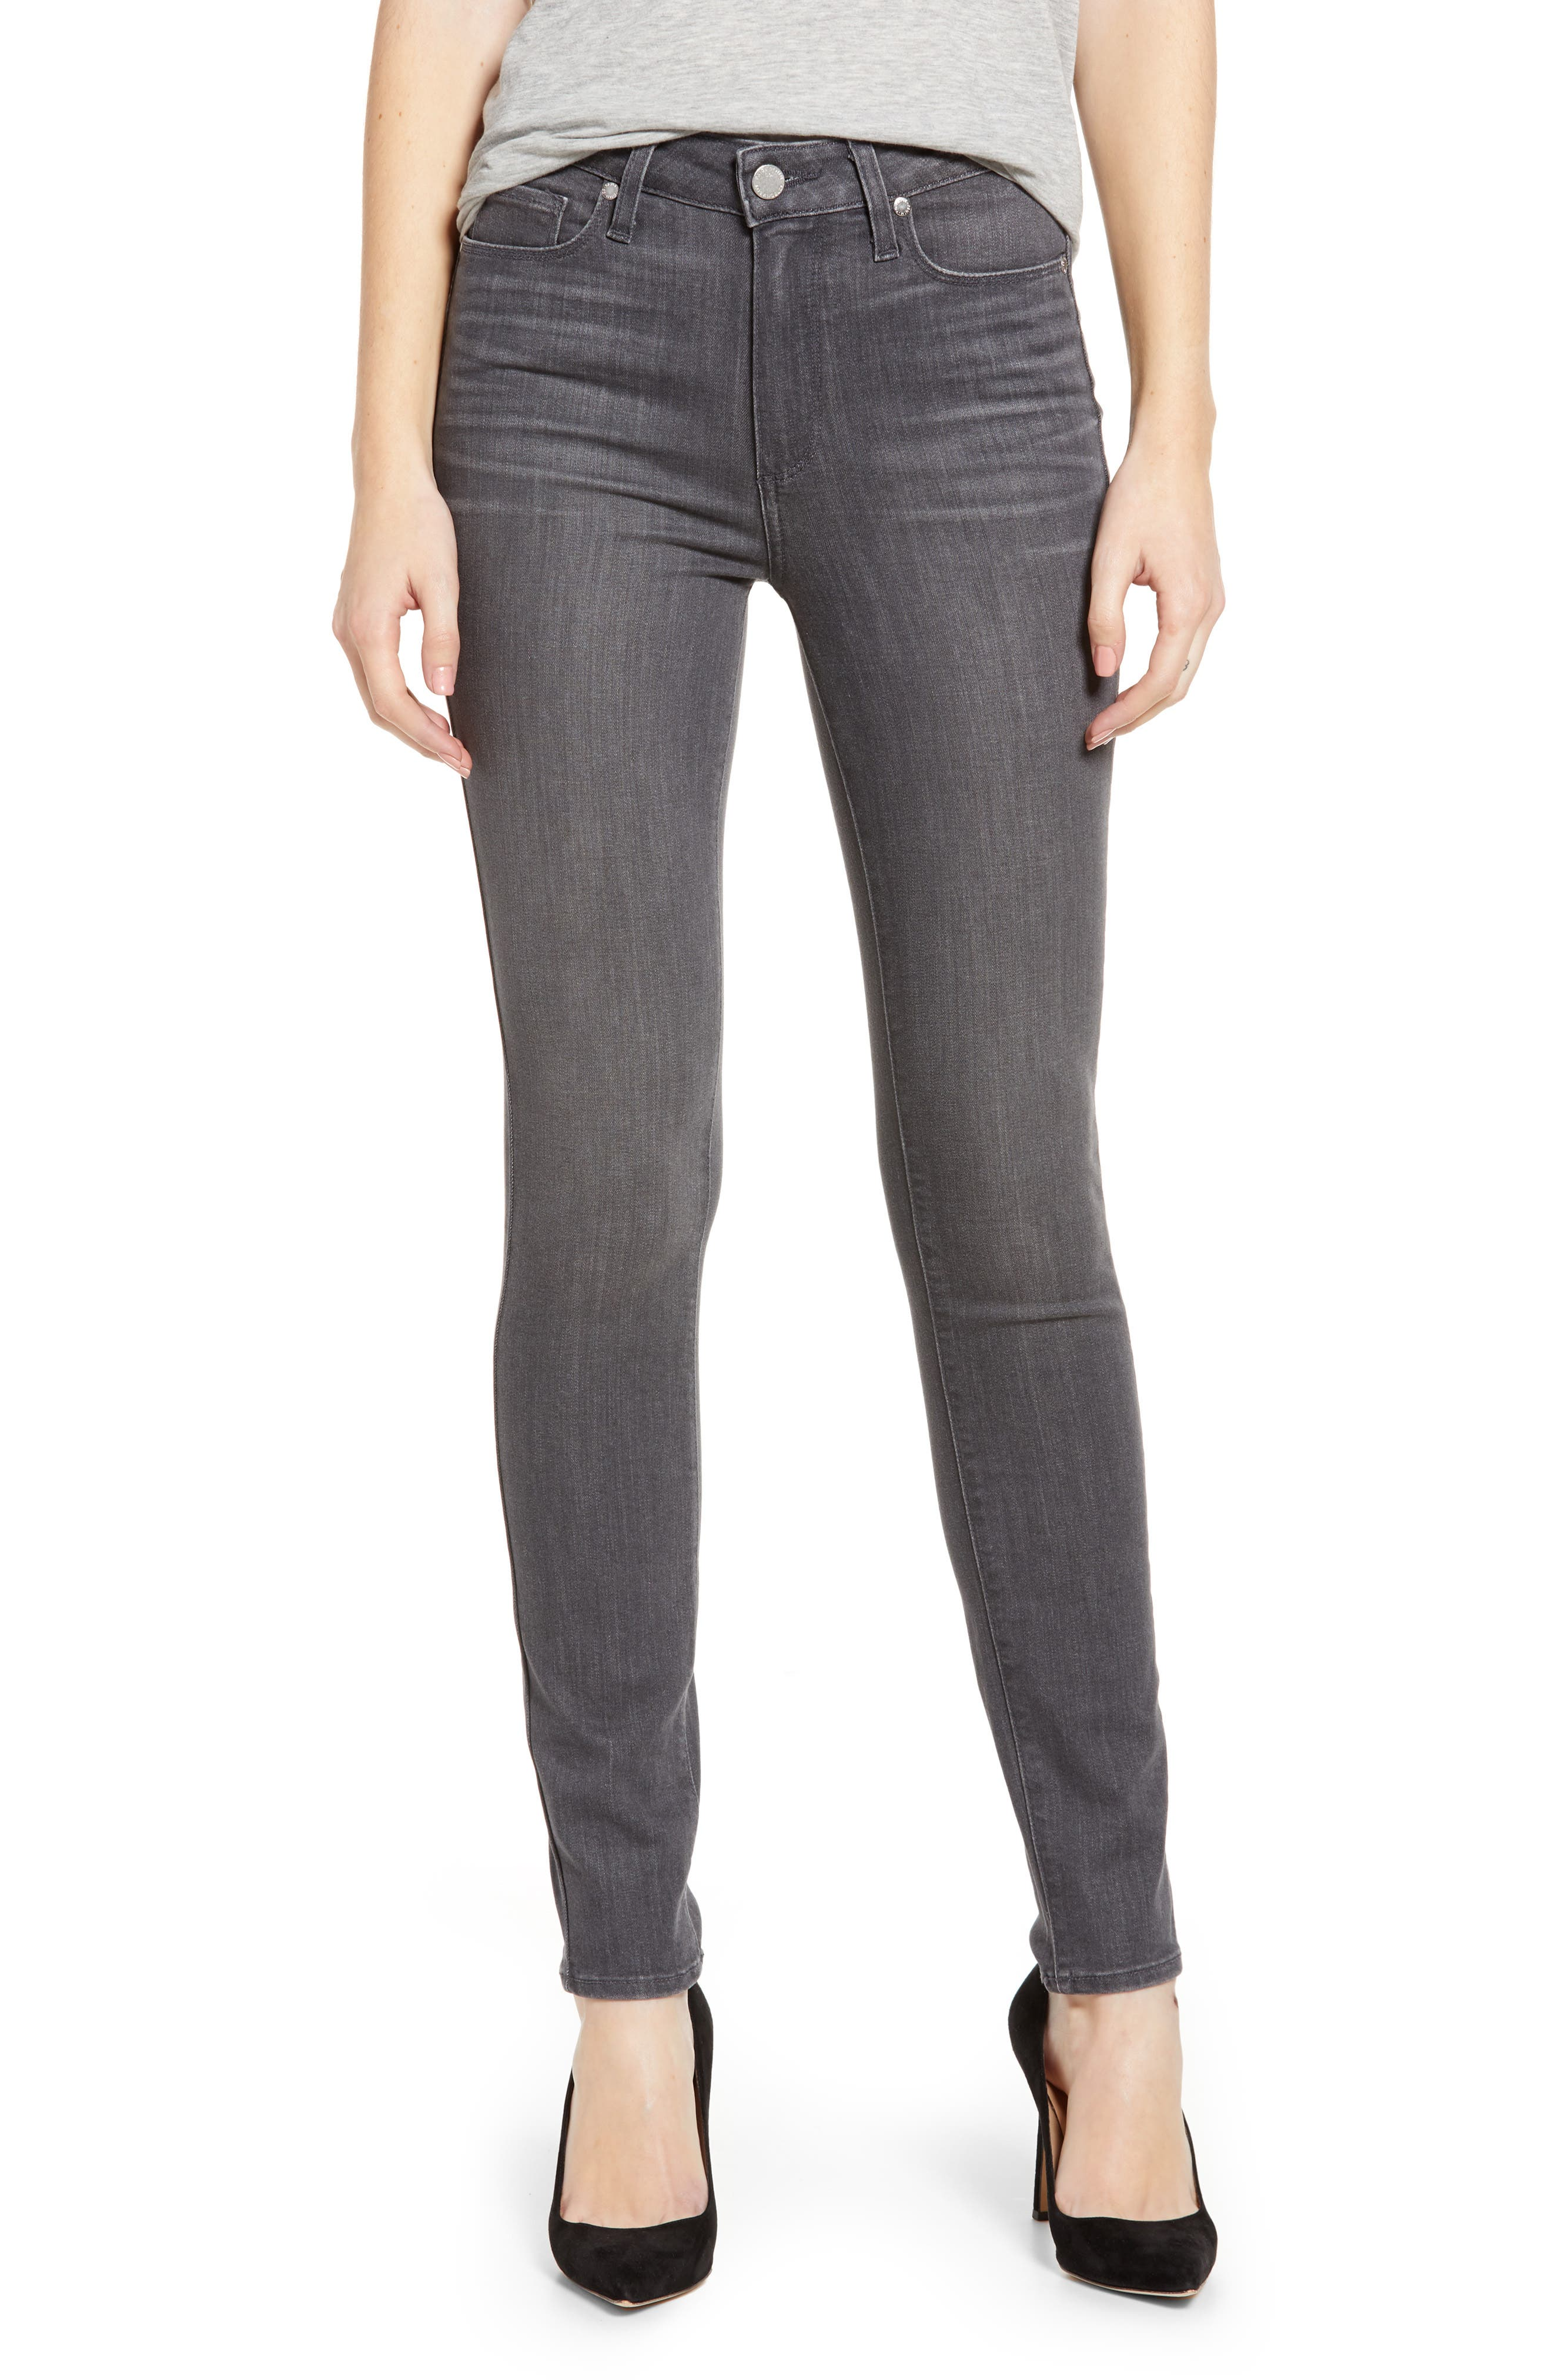 Women's Paige Hoxton Transcend High Waist Skinny Jeans